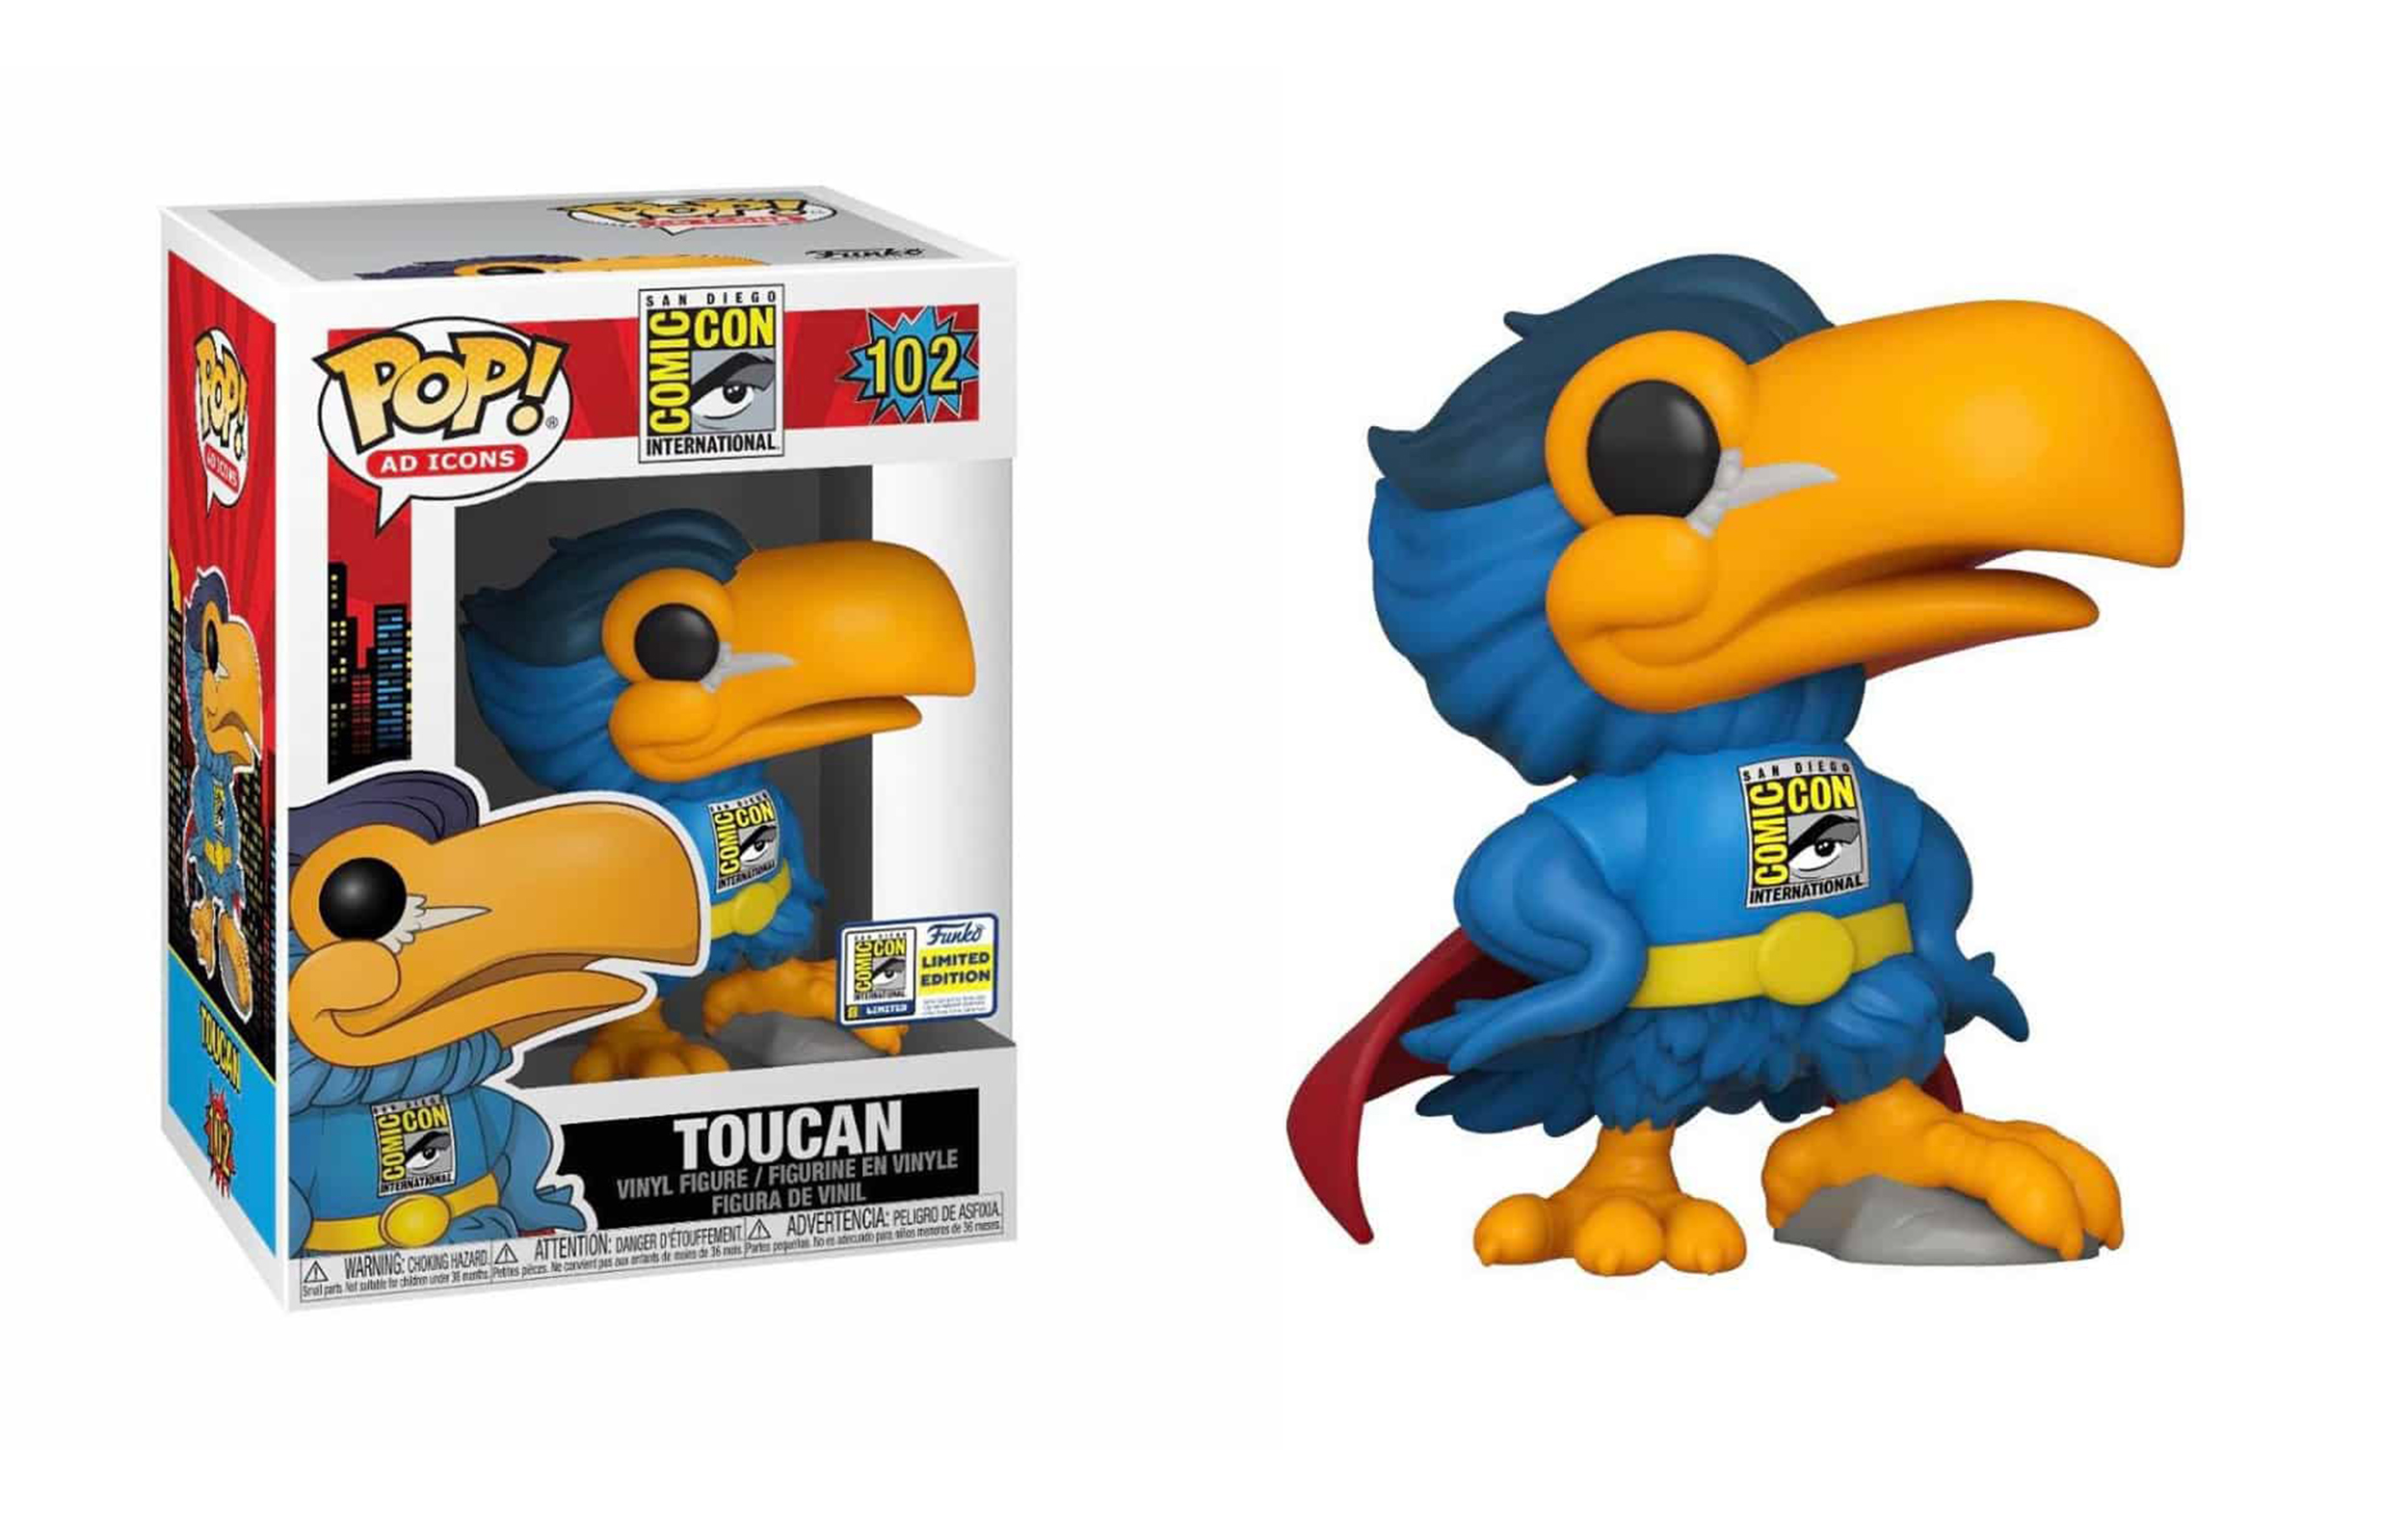 Toucan San Diego Comicon Limited Edition 2020 102 Funko POP Vinyl Figure